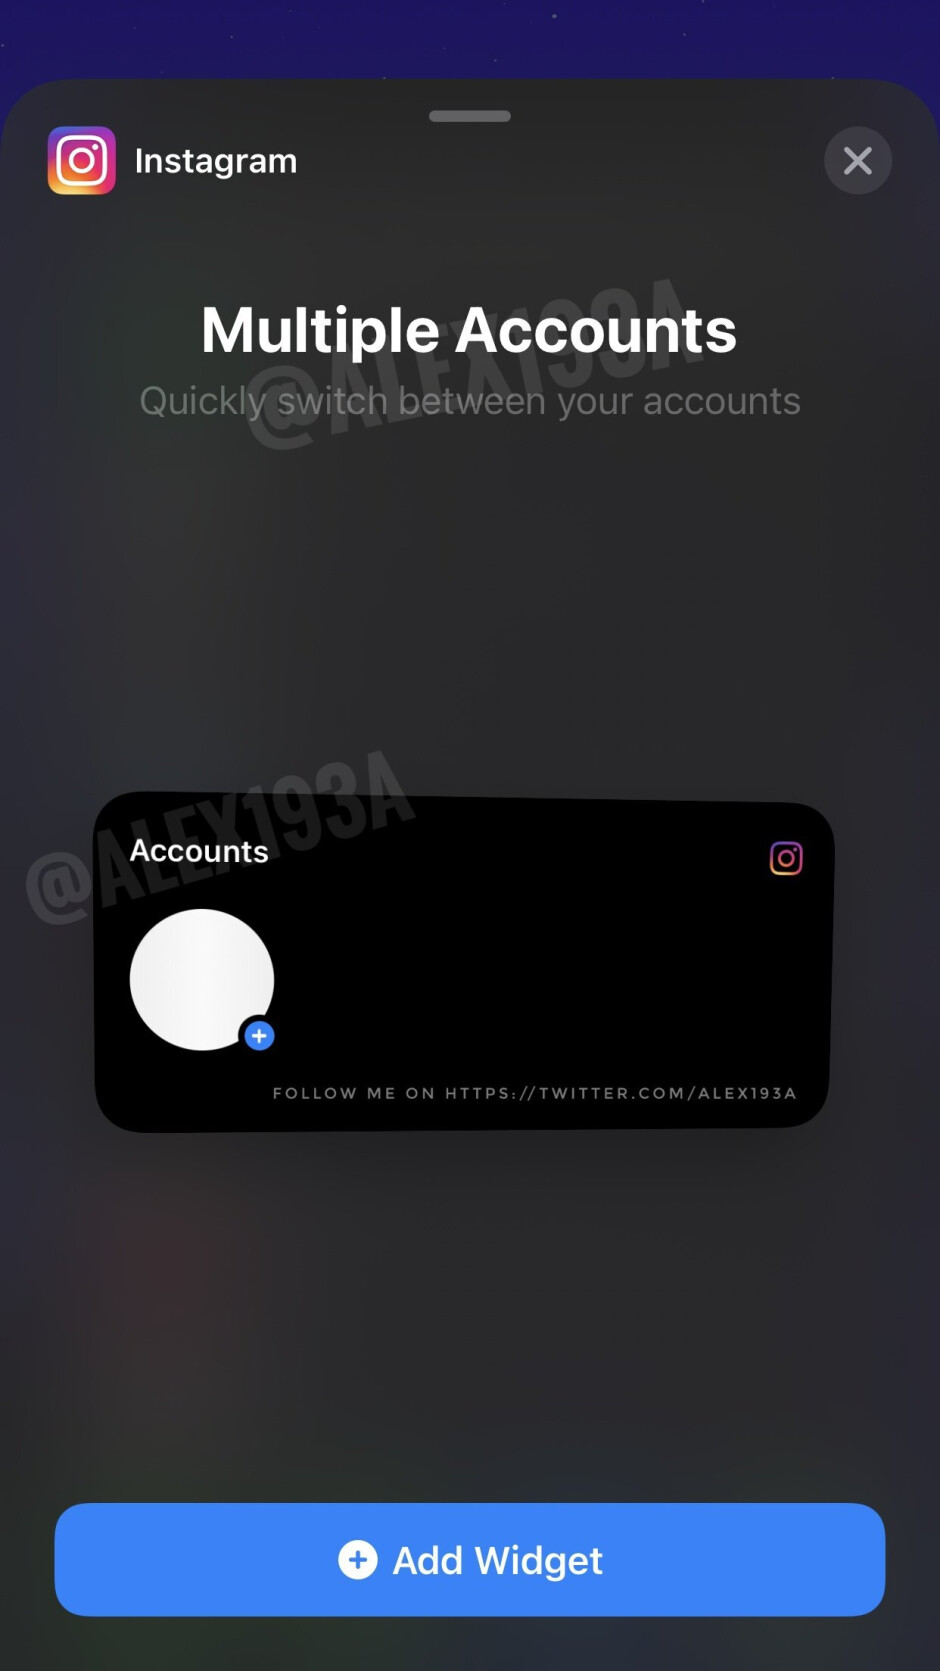 Instagram is working on an iOS home-screen widget for easy account switching